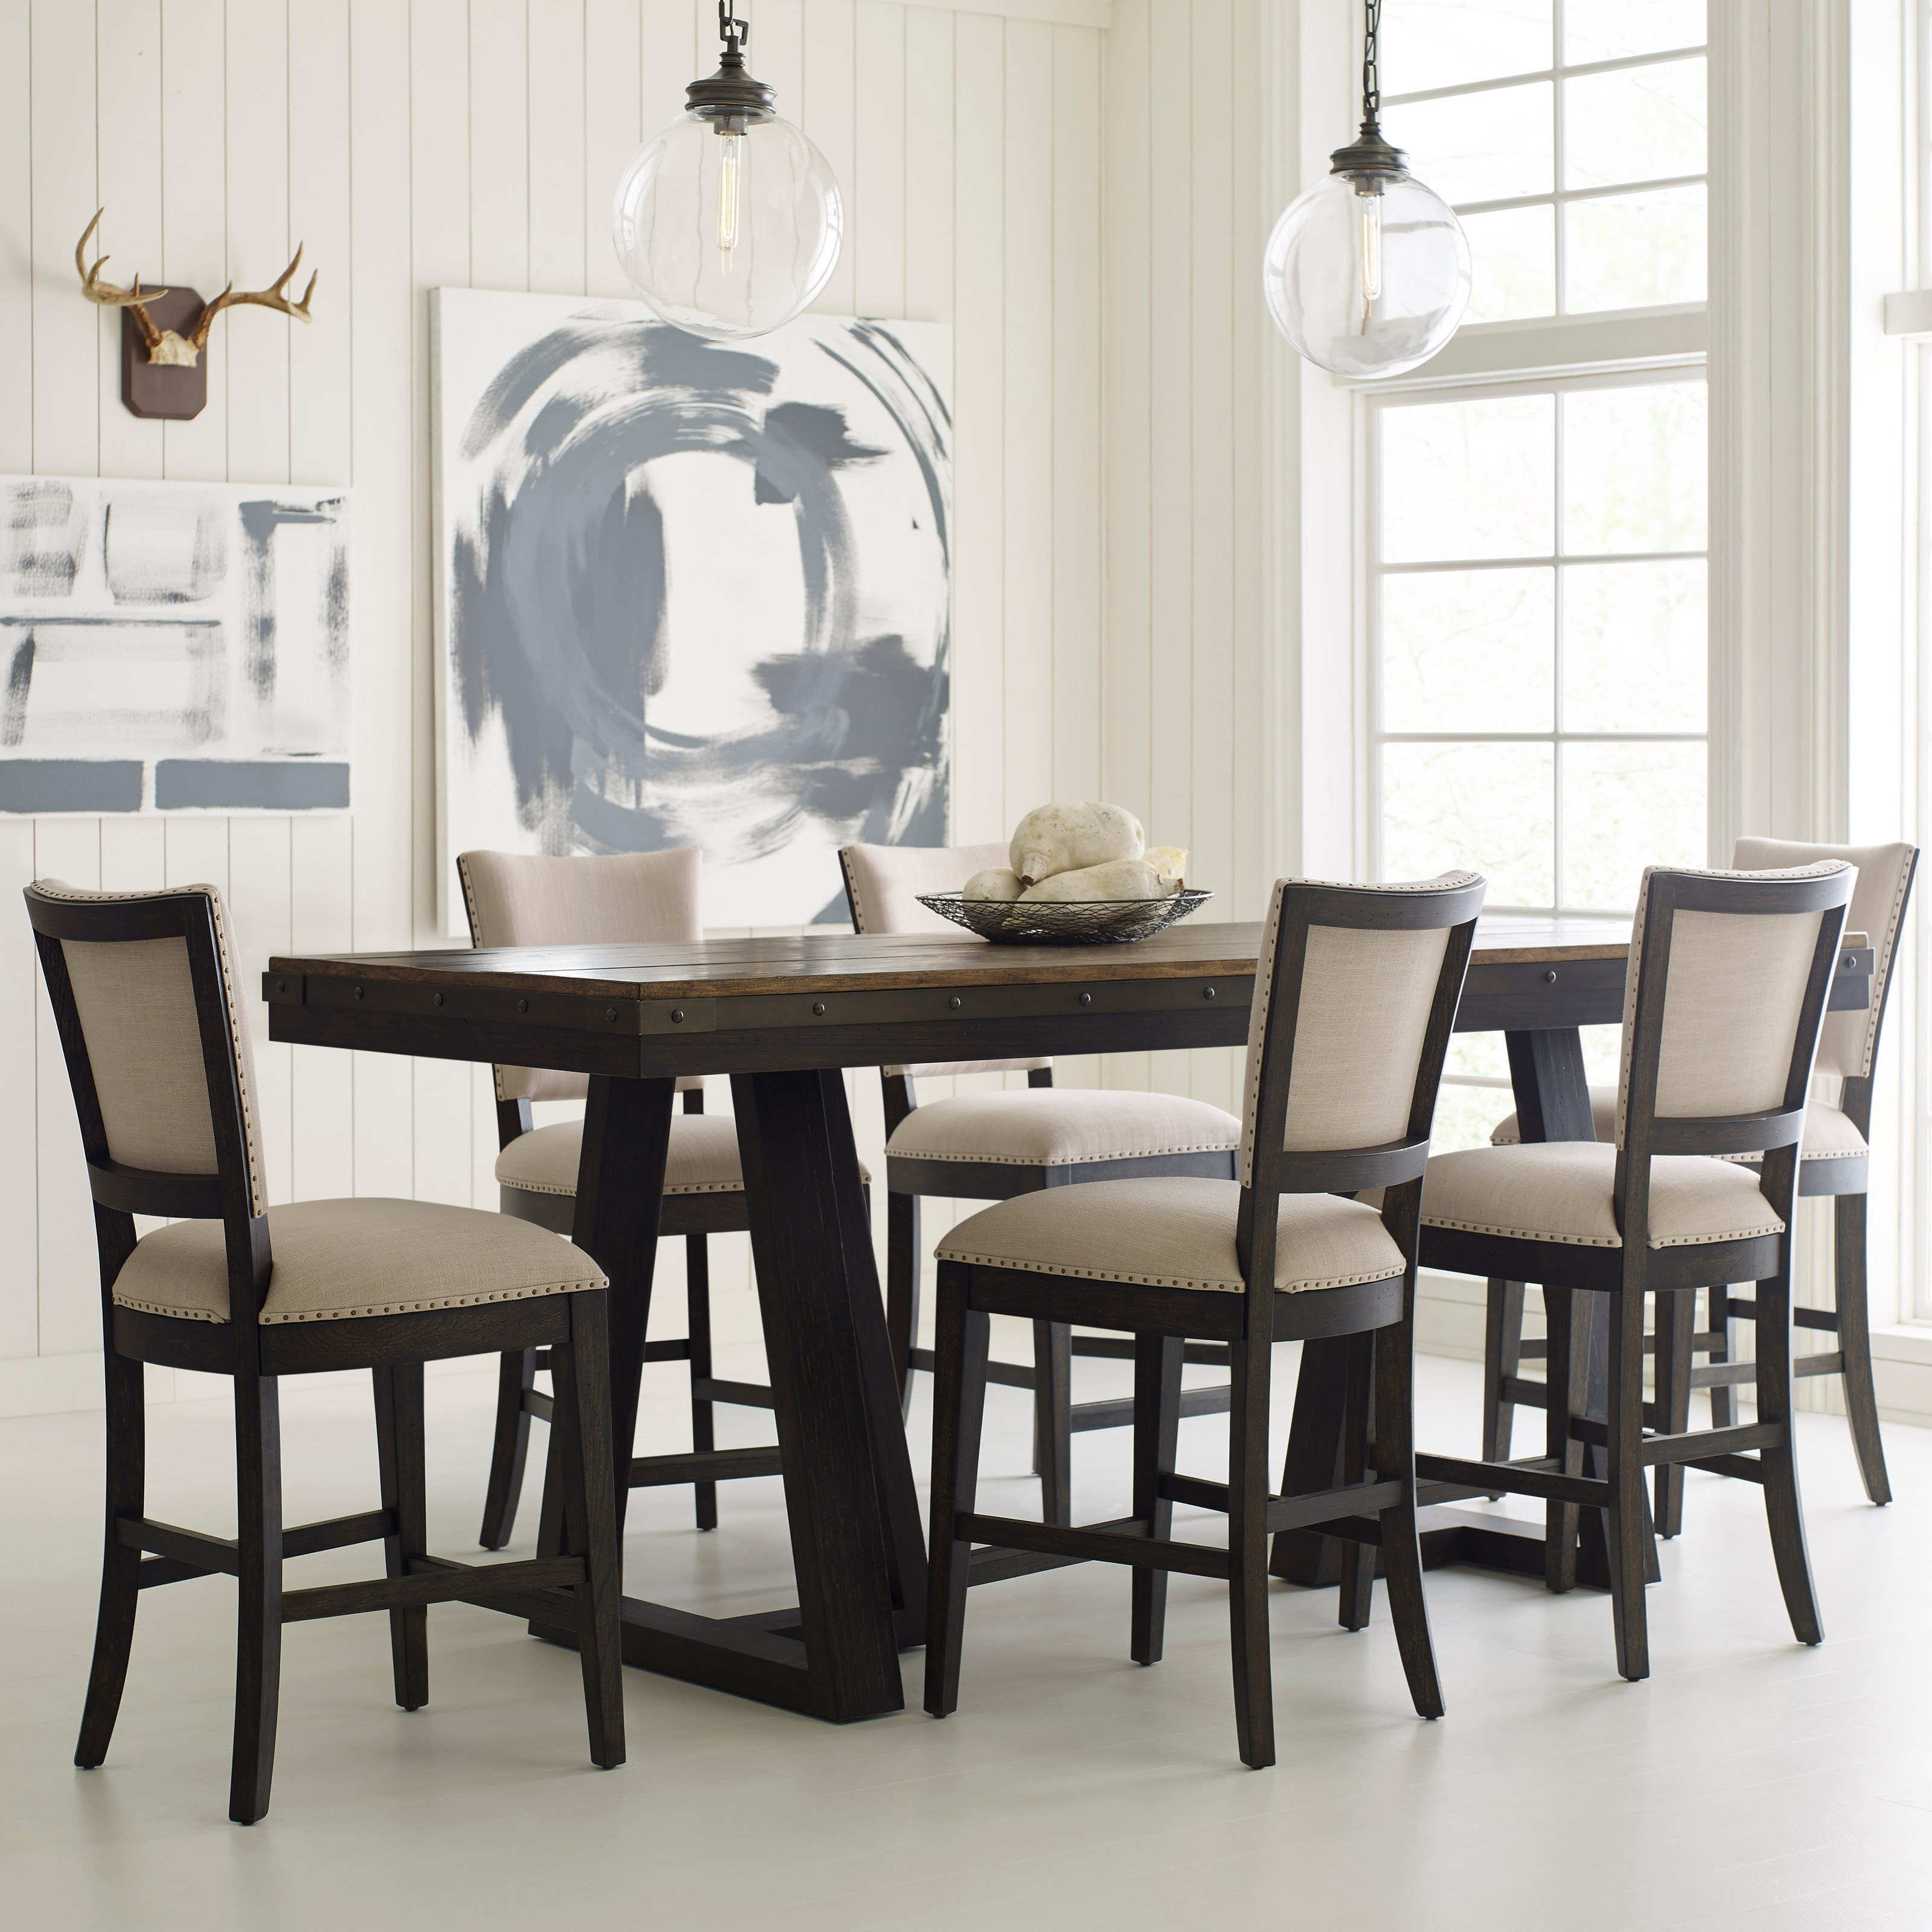 Kincaid Dining Room Set: Kincaid Furniture Plank Road Seven Piece Counter Height Dining Set